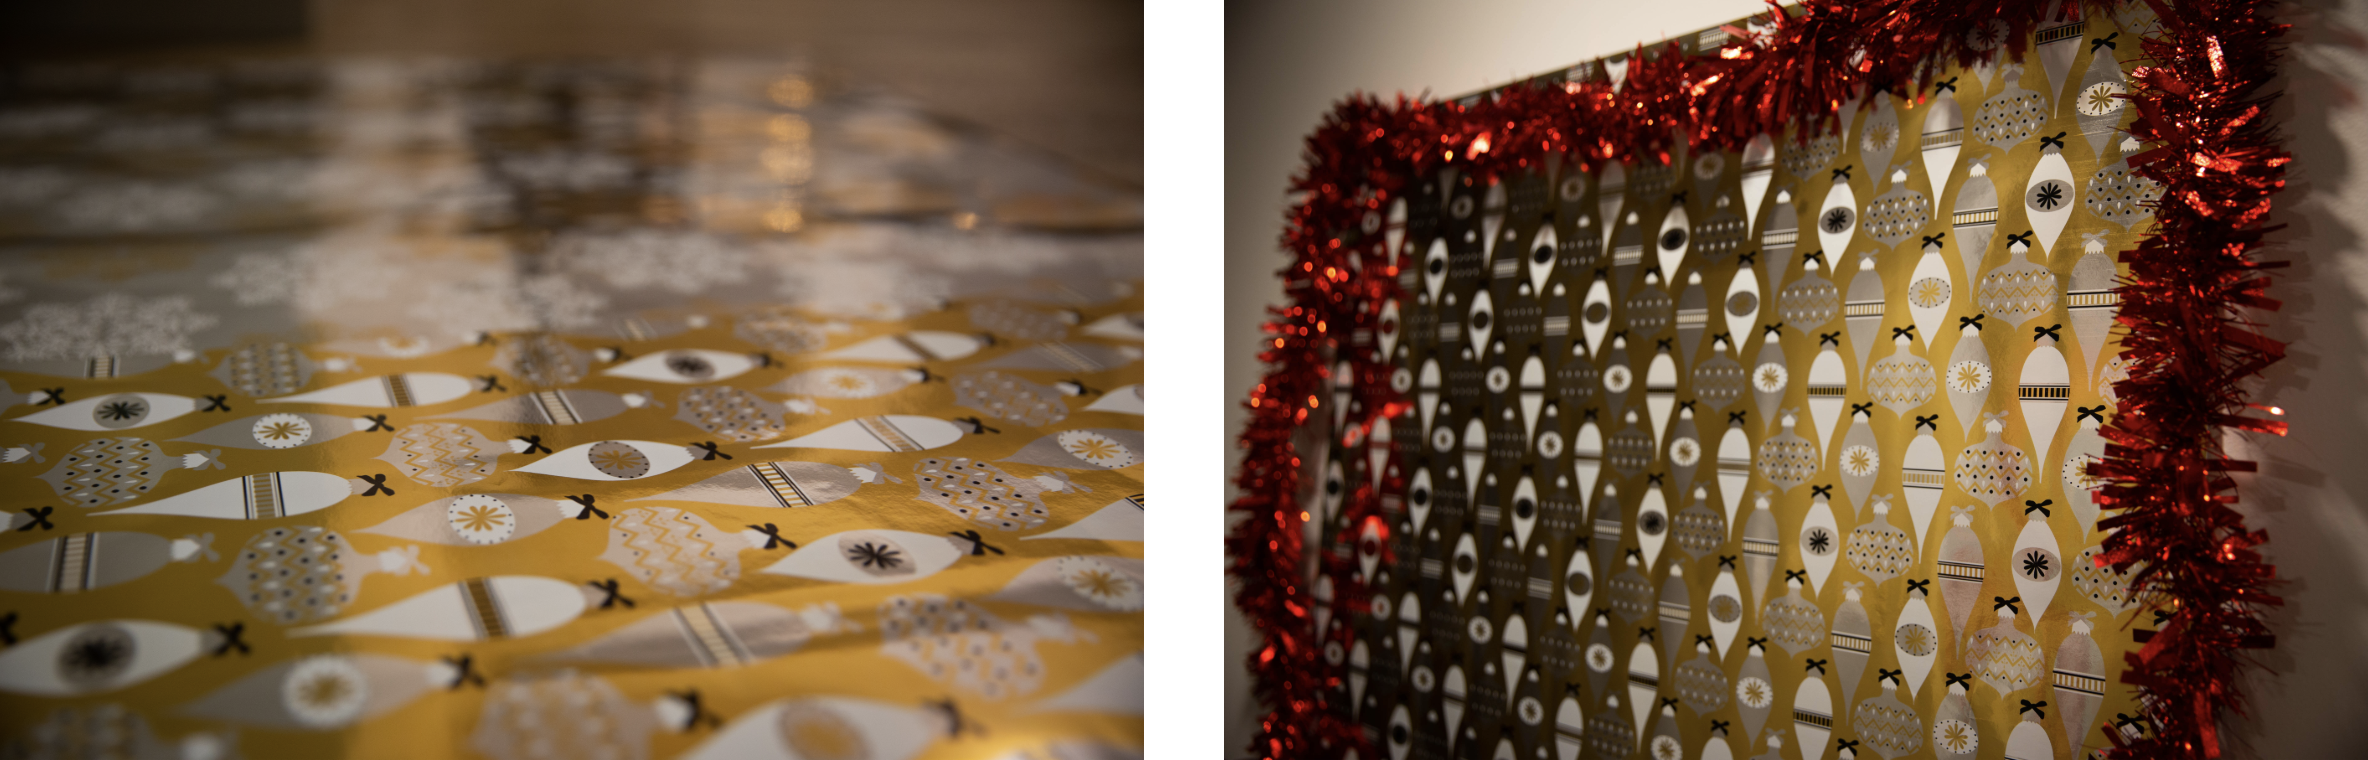 Photo (left) shows wrapping paper from an up-close view, while photo (right) shows finished selfie station.